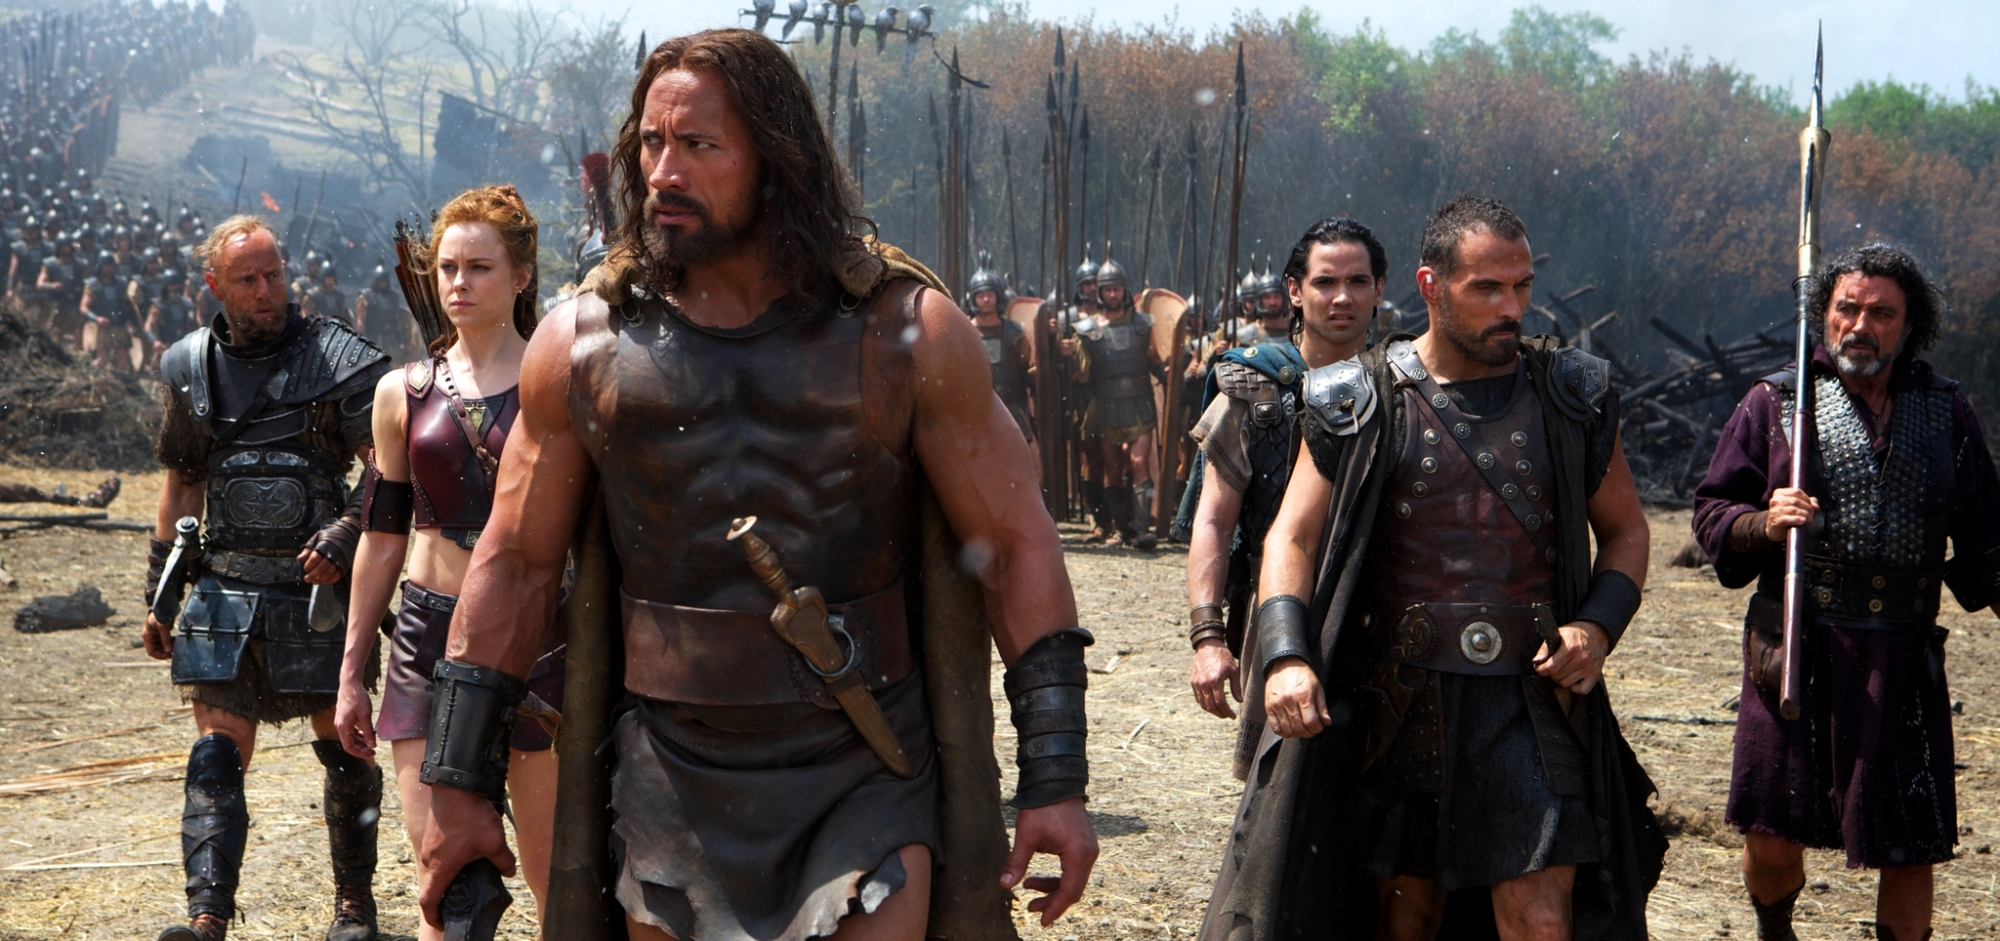 Hercules (2014) Directed by Brett Ratner - Movie Review  - Image 4